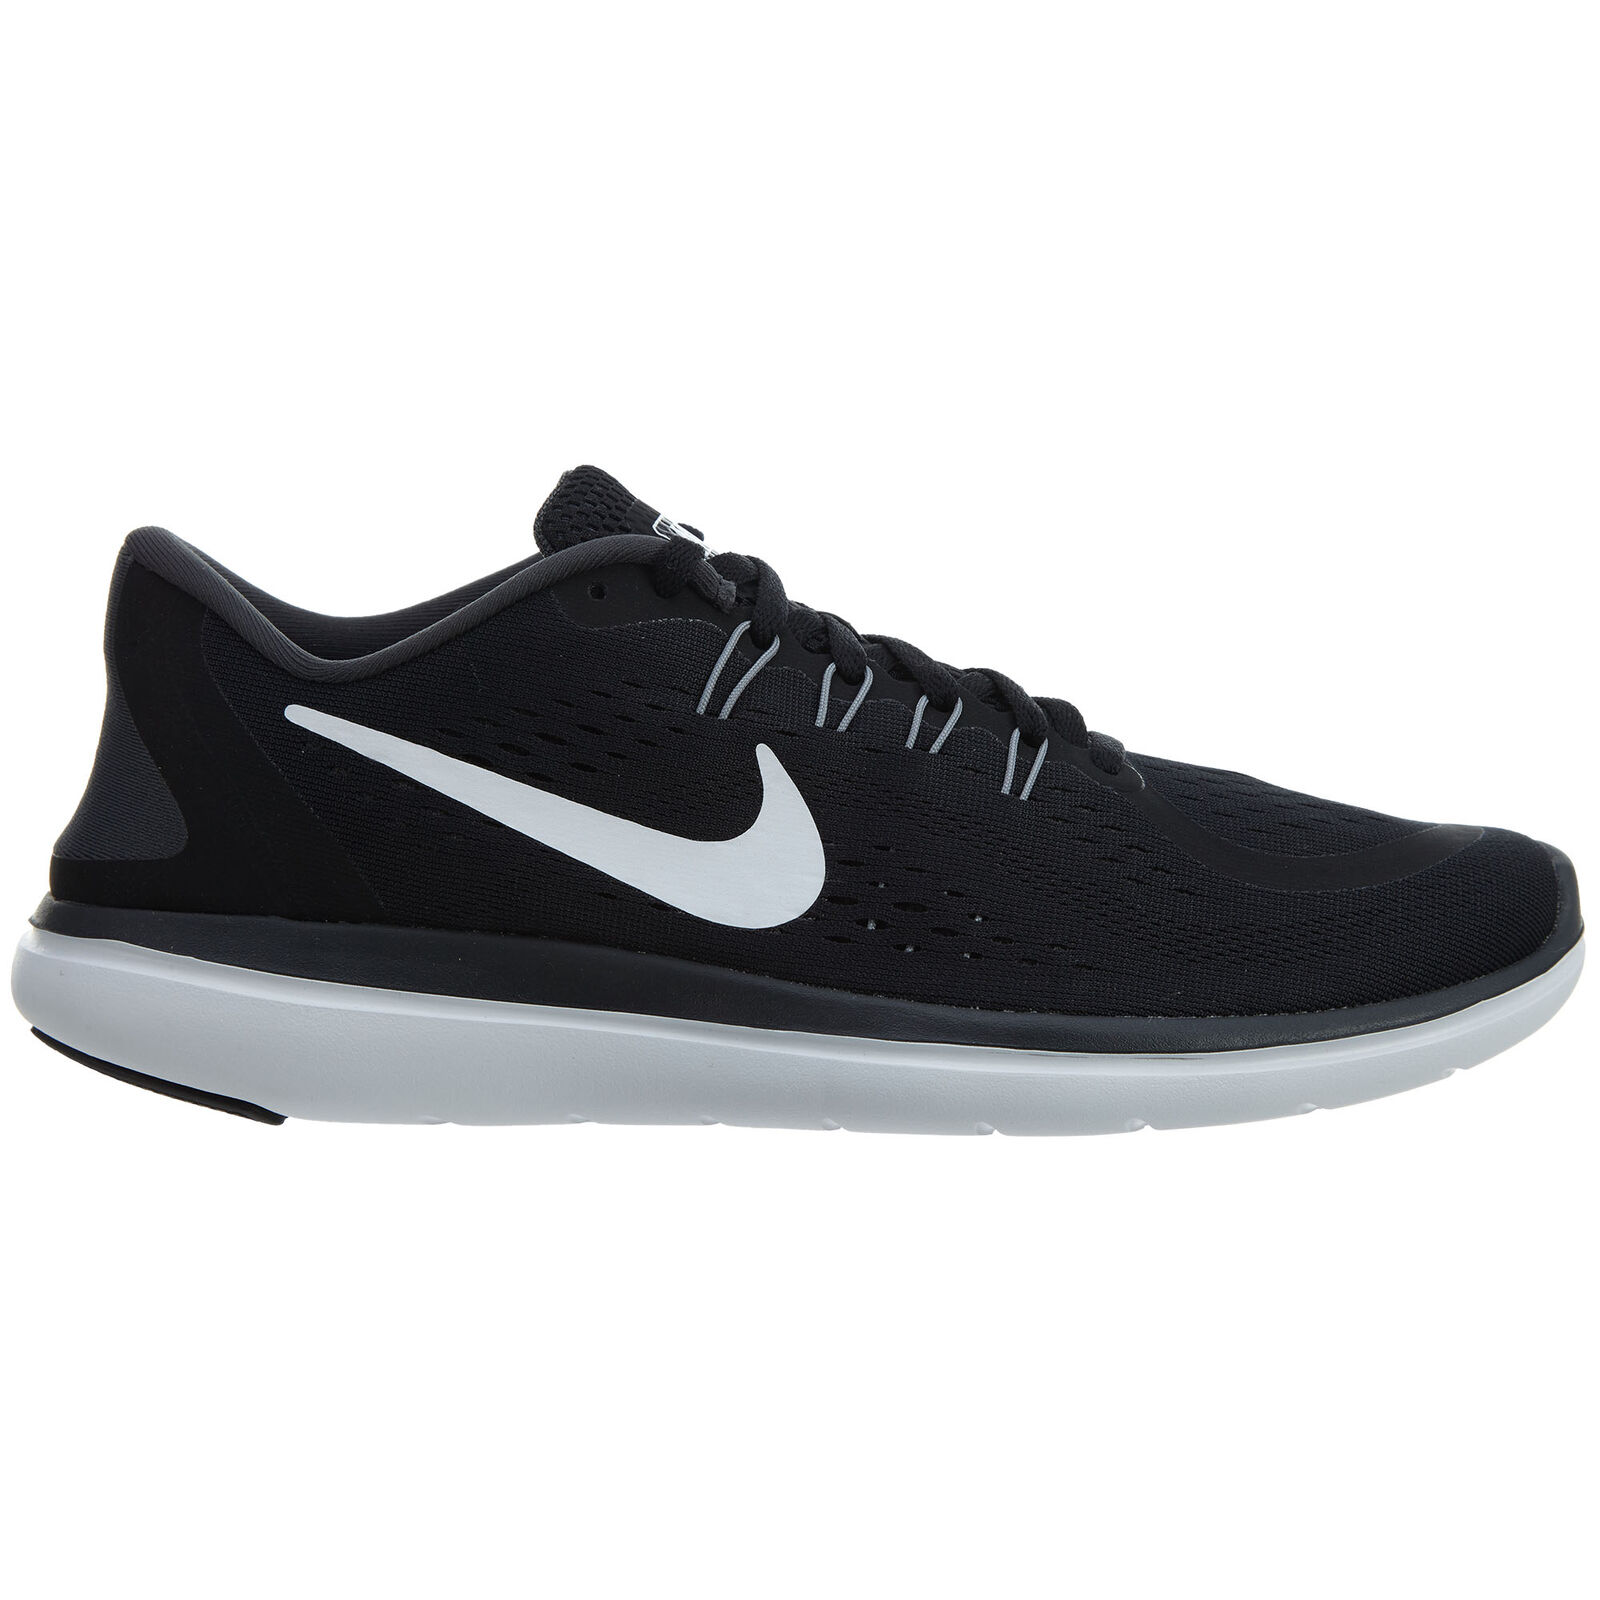 Nike Flex 2018 RN Mens 898457-001 Black White Grey Mesh Running Shoes Size 8.5